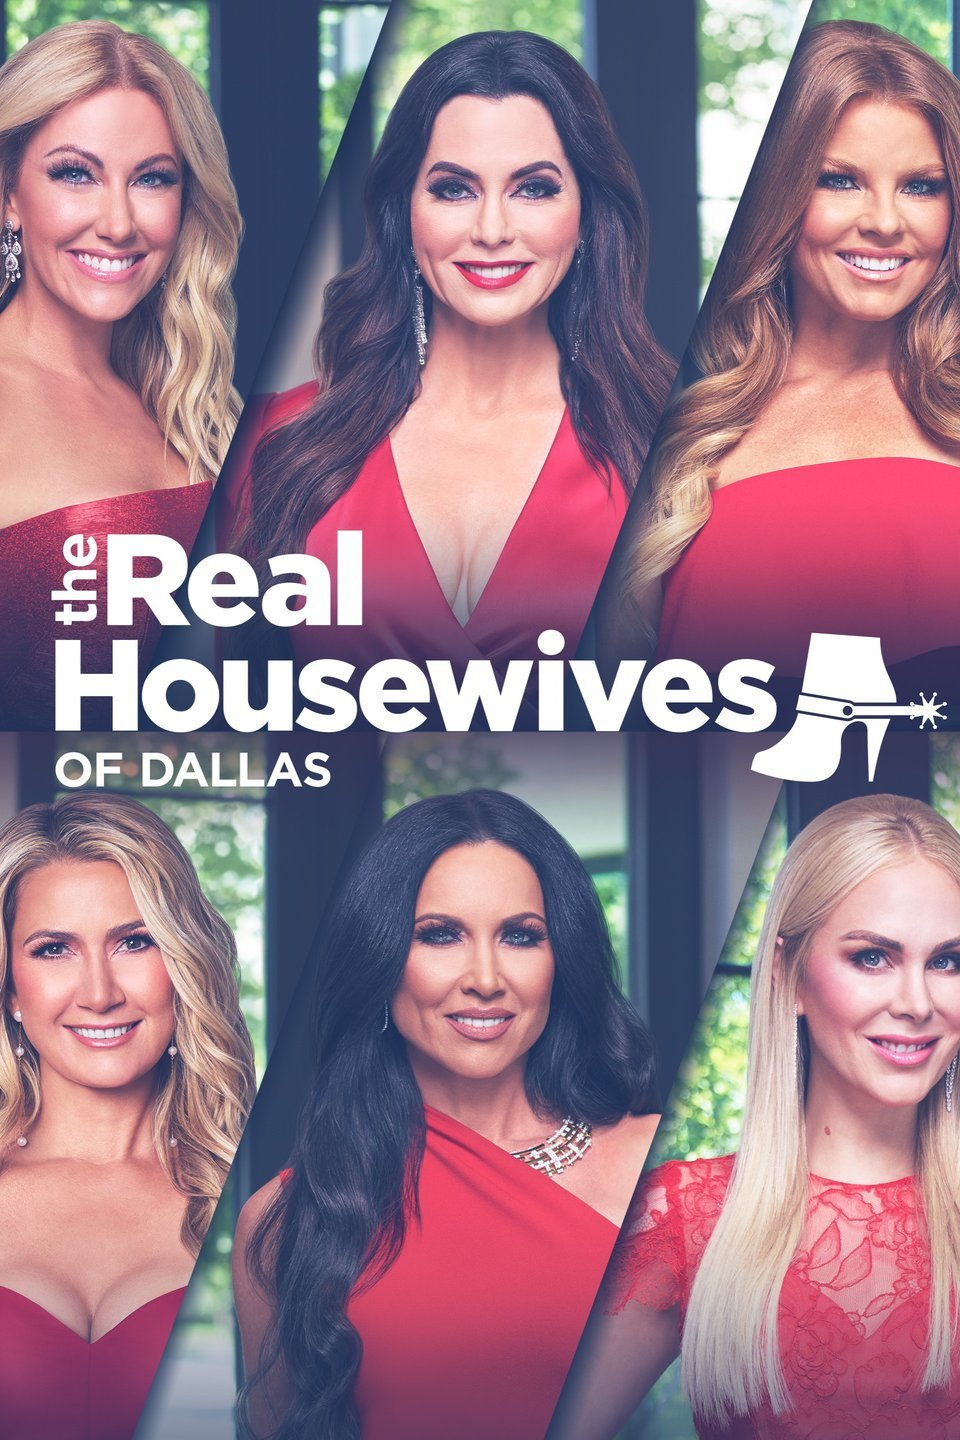 The.Real.Housewives.of.Dallas.S04E06.Cirque.dLingerie.HDTV.x264-CRiMSON